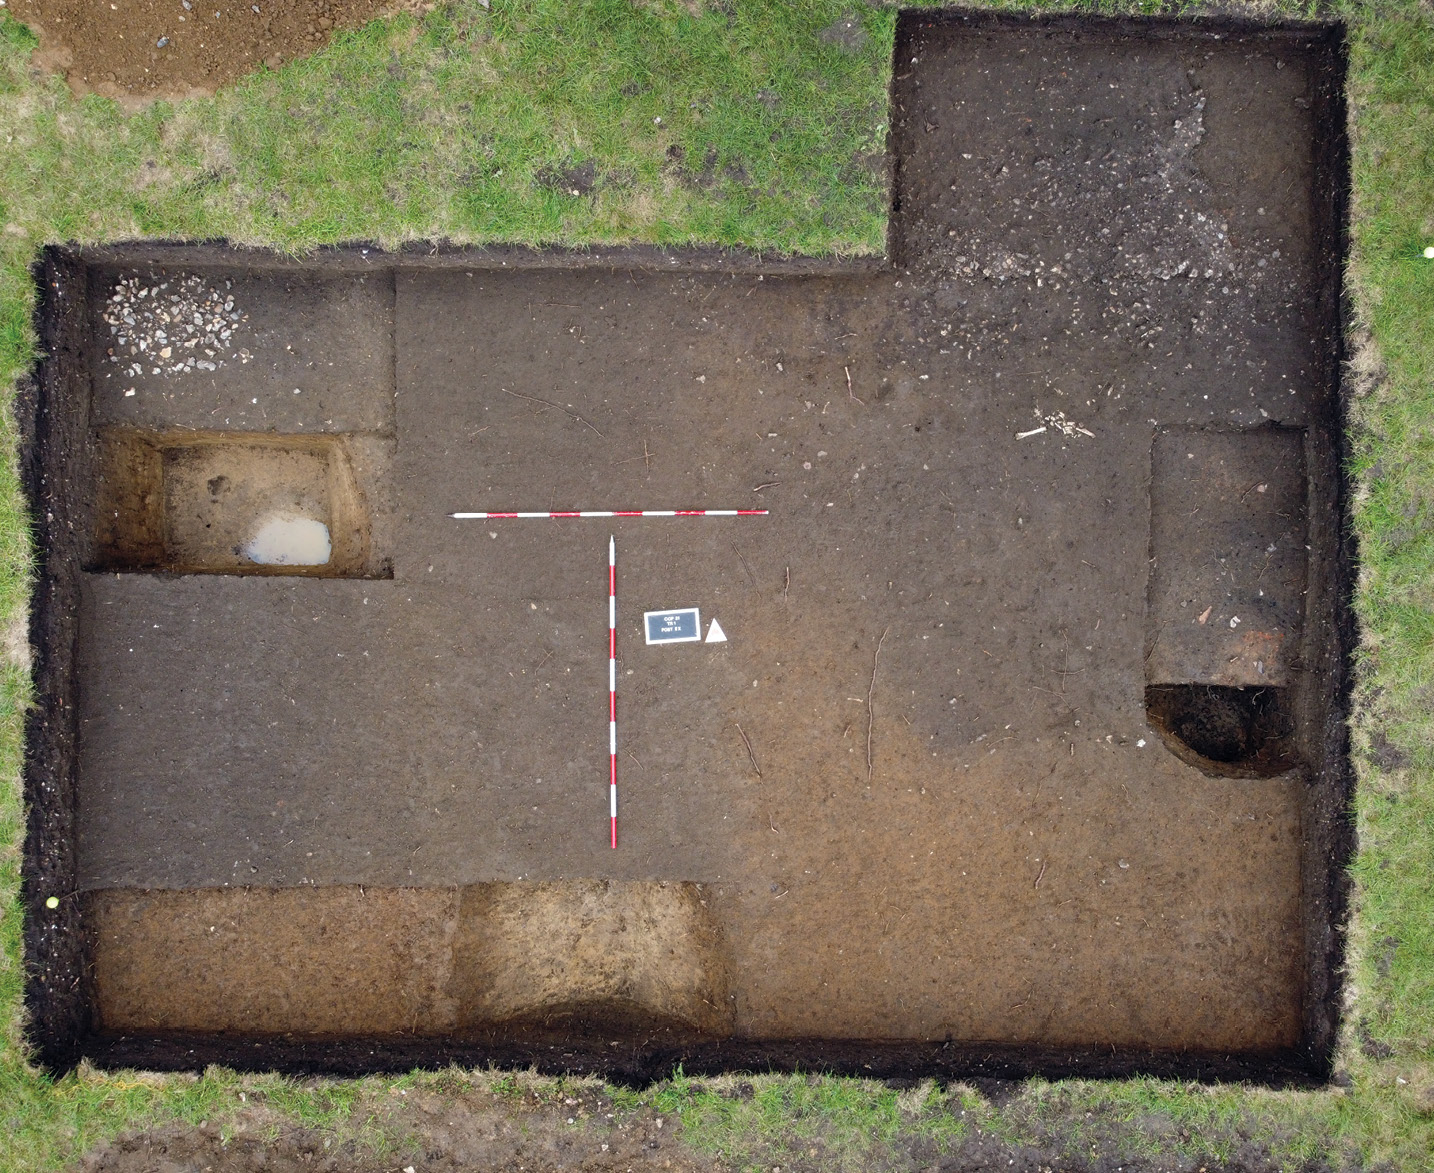 below This trench preserves a portion of a metalled surface/trackway in its top right area. Such routeways represent significant investment in infrastructure on the site. Partially excavated pits (shown extreme left and right) and a section of ditch (bottom) can also be seen.